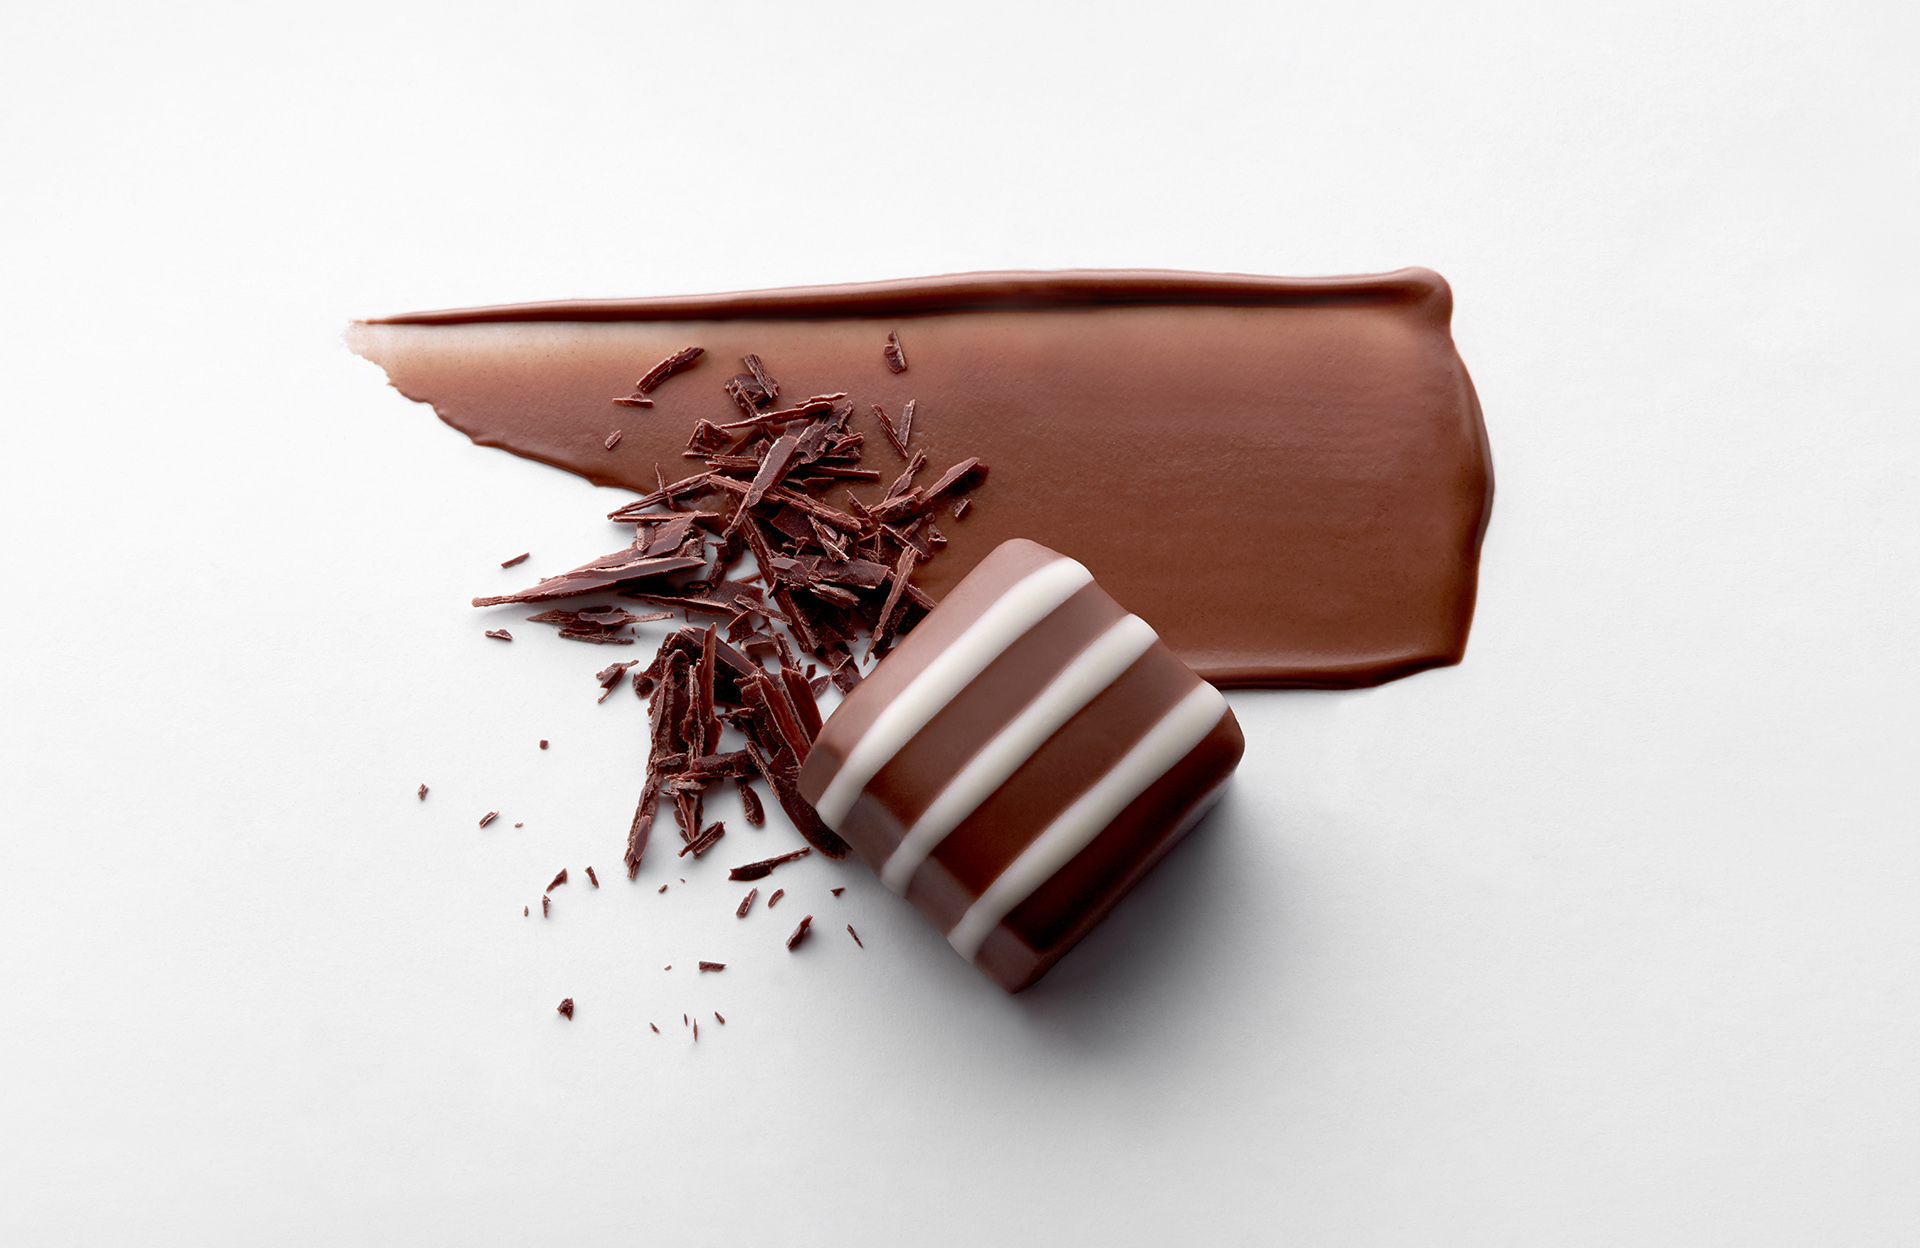 chocolate-smears-swatches-creative-food-still-life-photographer-london-photography-1.jpg